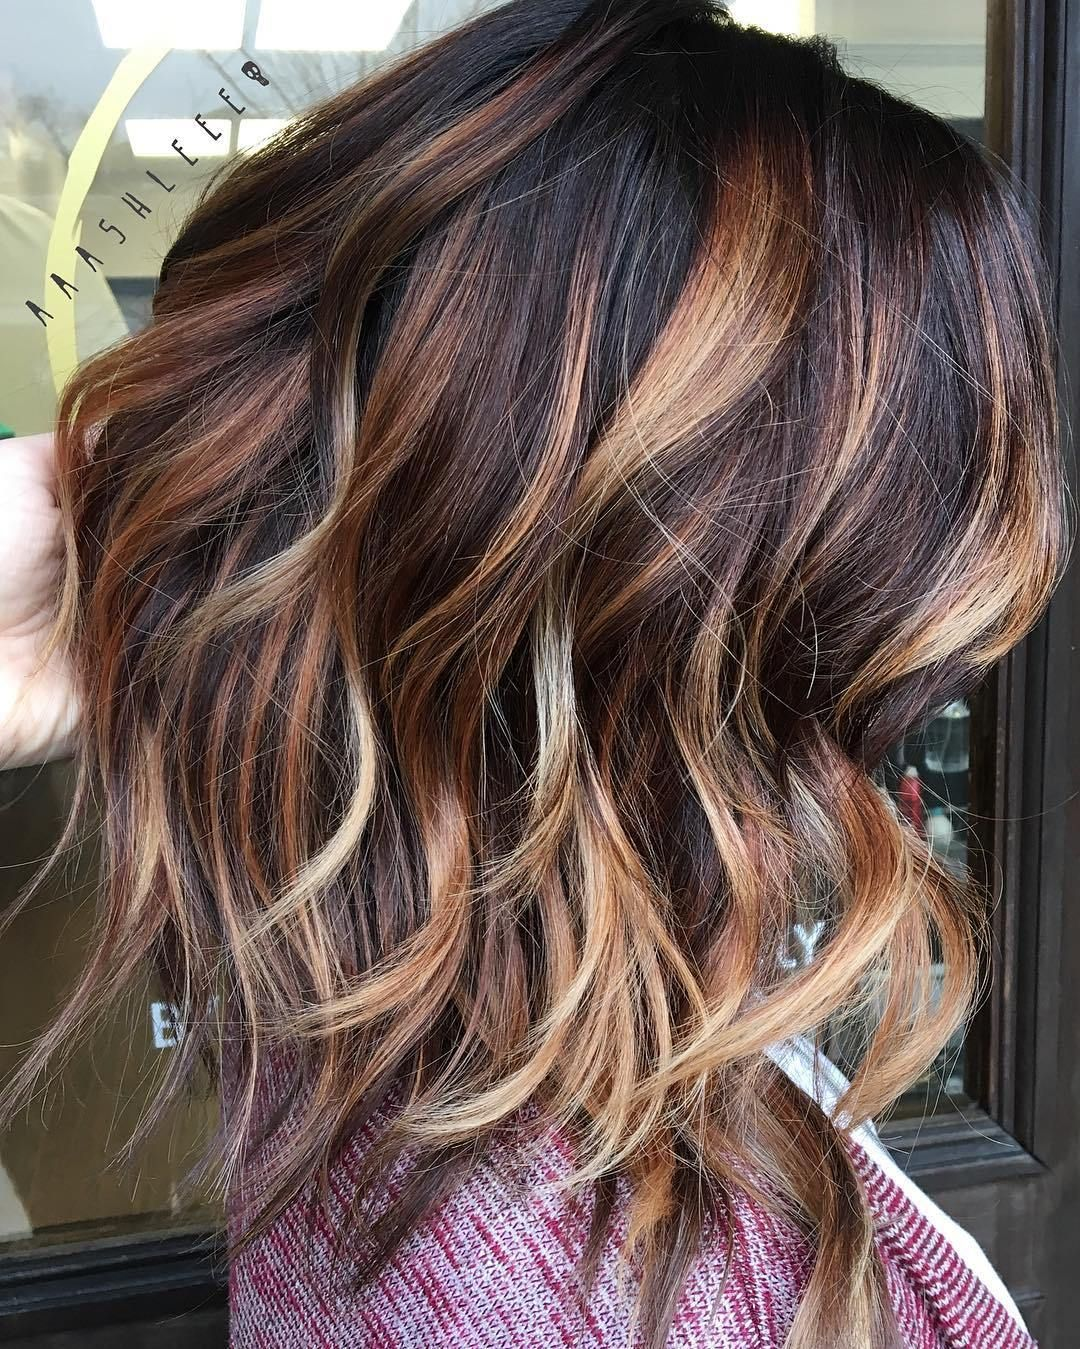 50 HOTTEST Balayage Hair Ideas to Try in 2020 - Hair Adviser